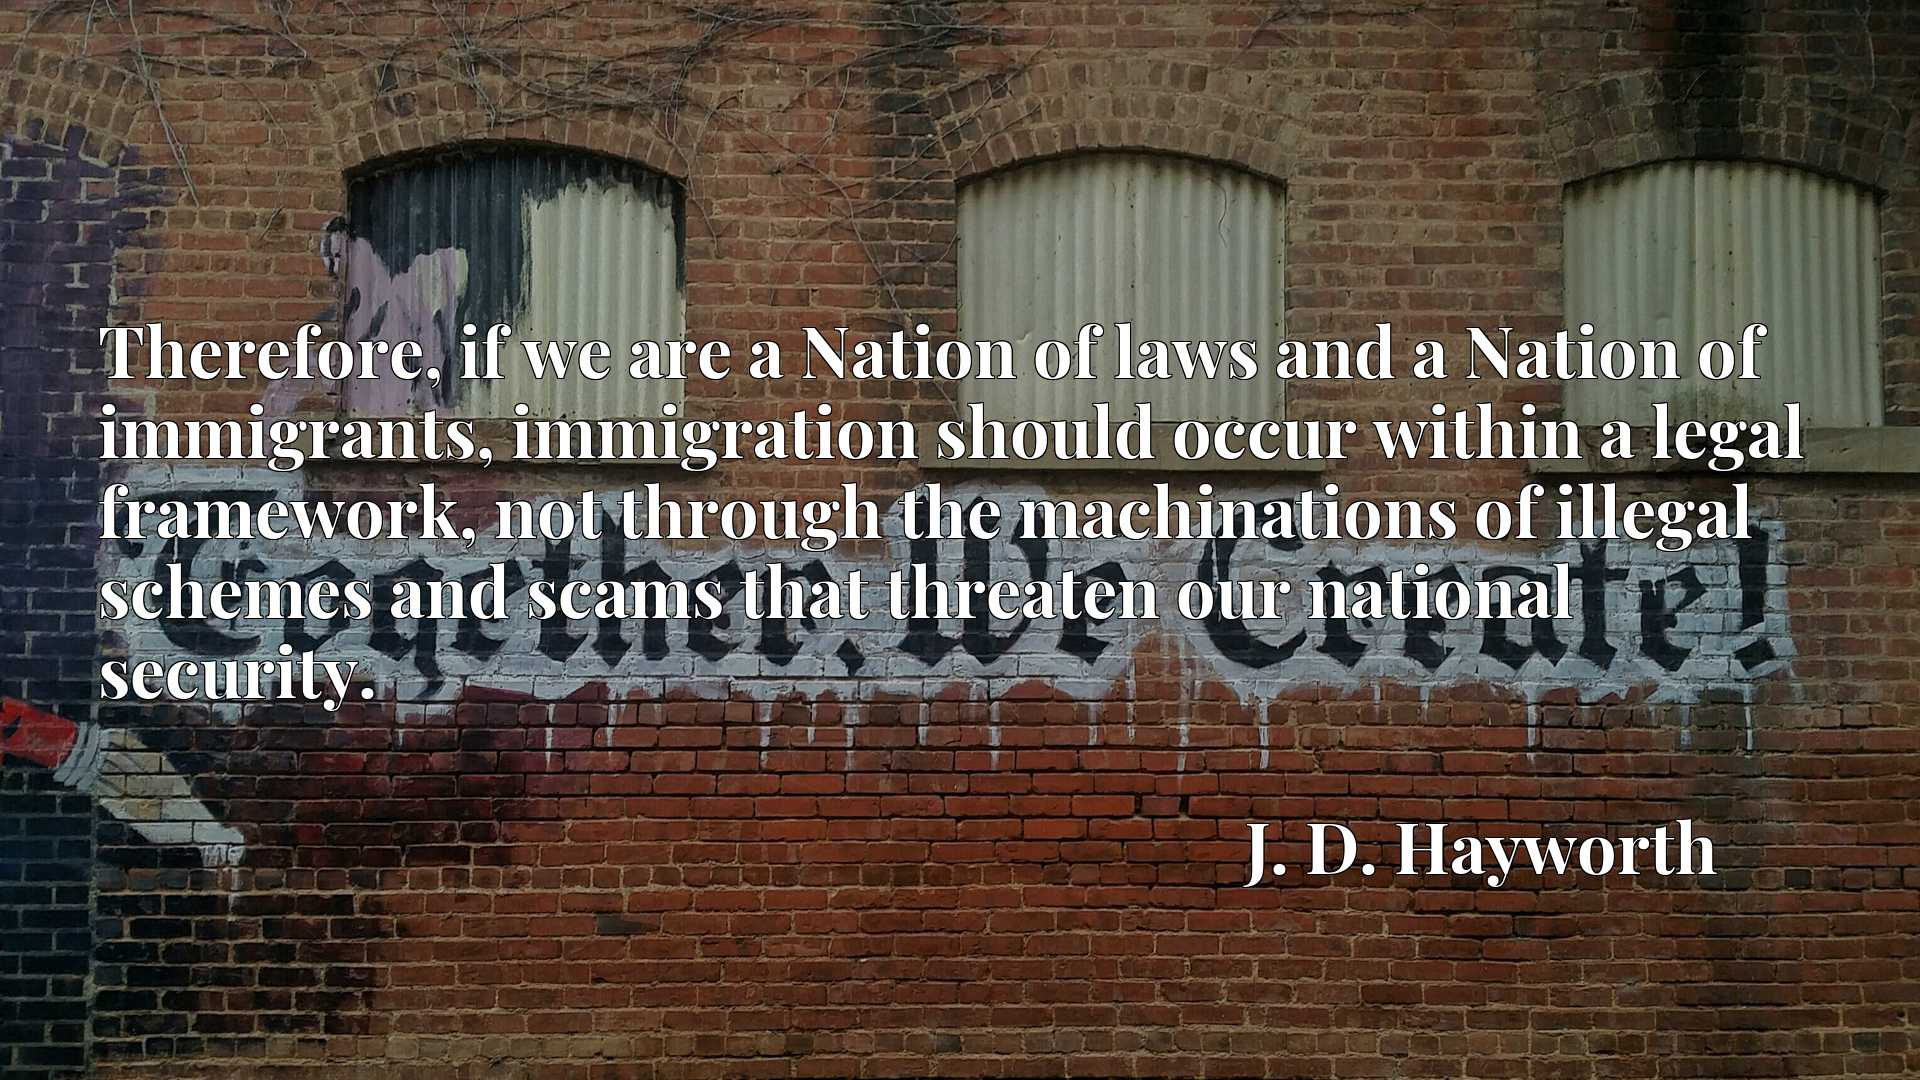 Therefore, if we are a Nation of laws and a Nation of immigrants, immigration should occur within a legal framework, not through the machinations of illegal schemes and scams that threaten our national security.